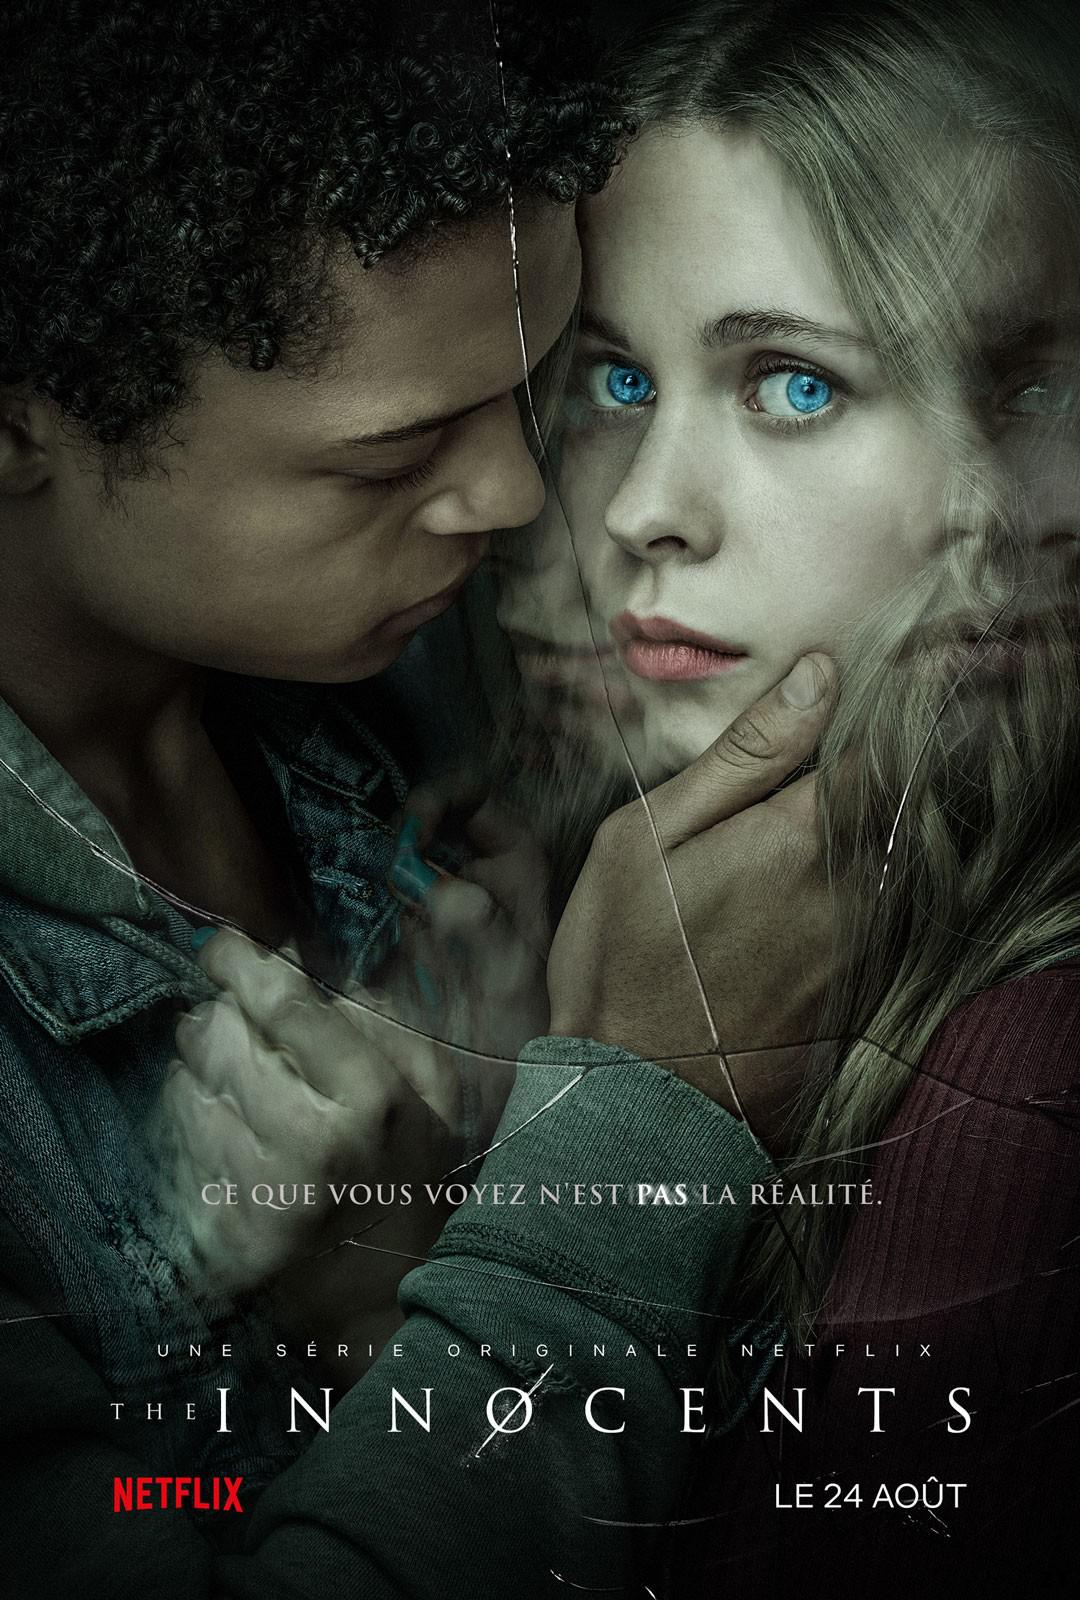 Telecharger The Innocents- Saison 1 [COMPLETE] [08/08] FRENCH | Qualité HD 720p